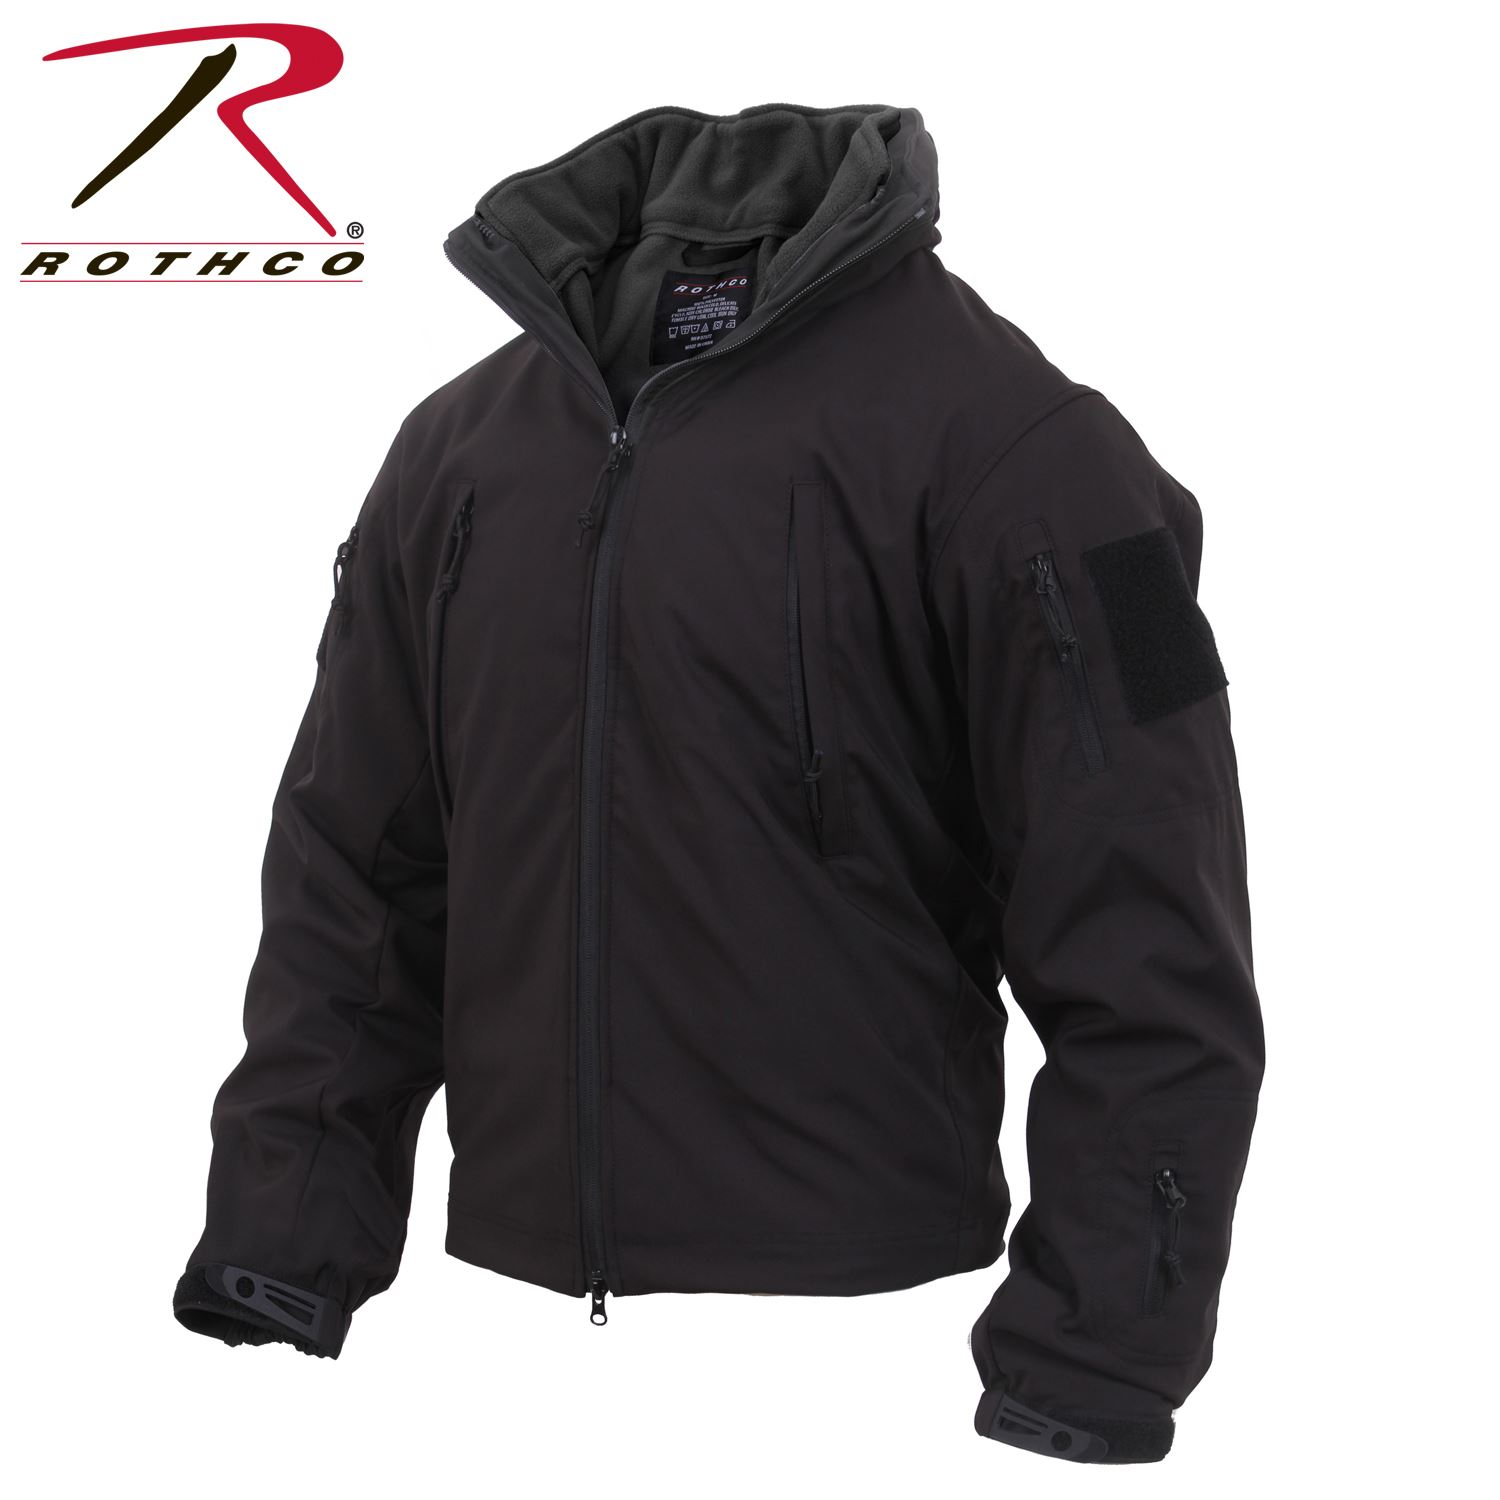 Fine Jacket Inc Rothco 3 In 1 Spec Ops Soft Shell Jacket